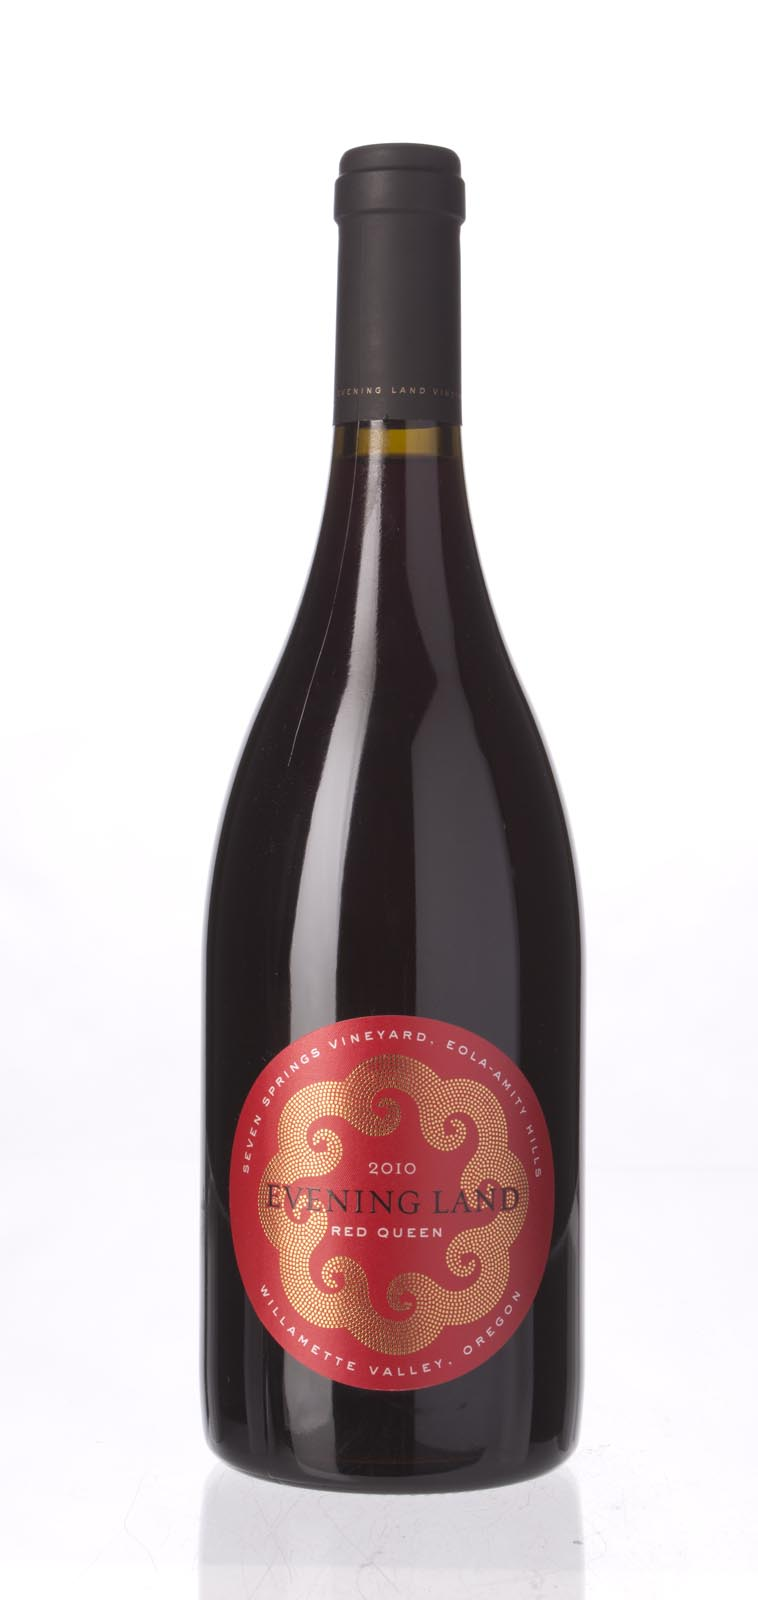 Evening Land Vineyards Pinot Noir Red Queen Seven Springs Vineyard 2010, 750mL () from The BPW - Merchants of rare and fine wines.